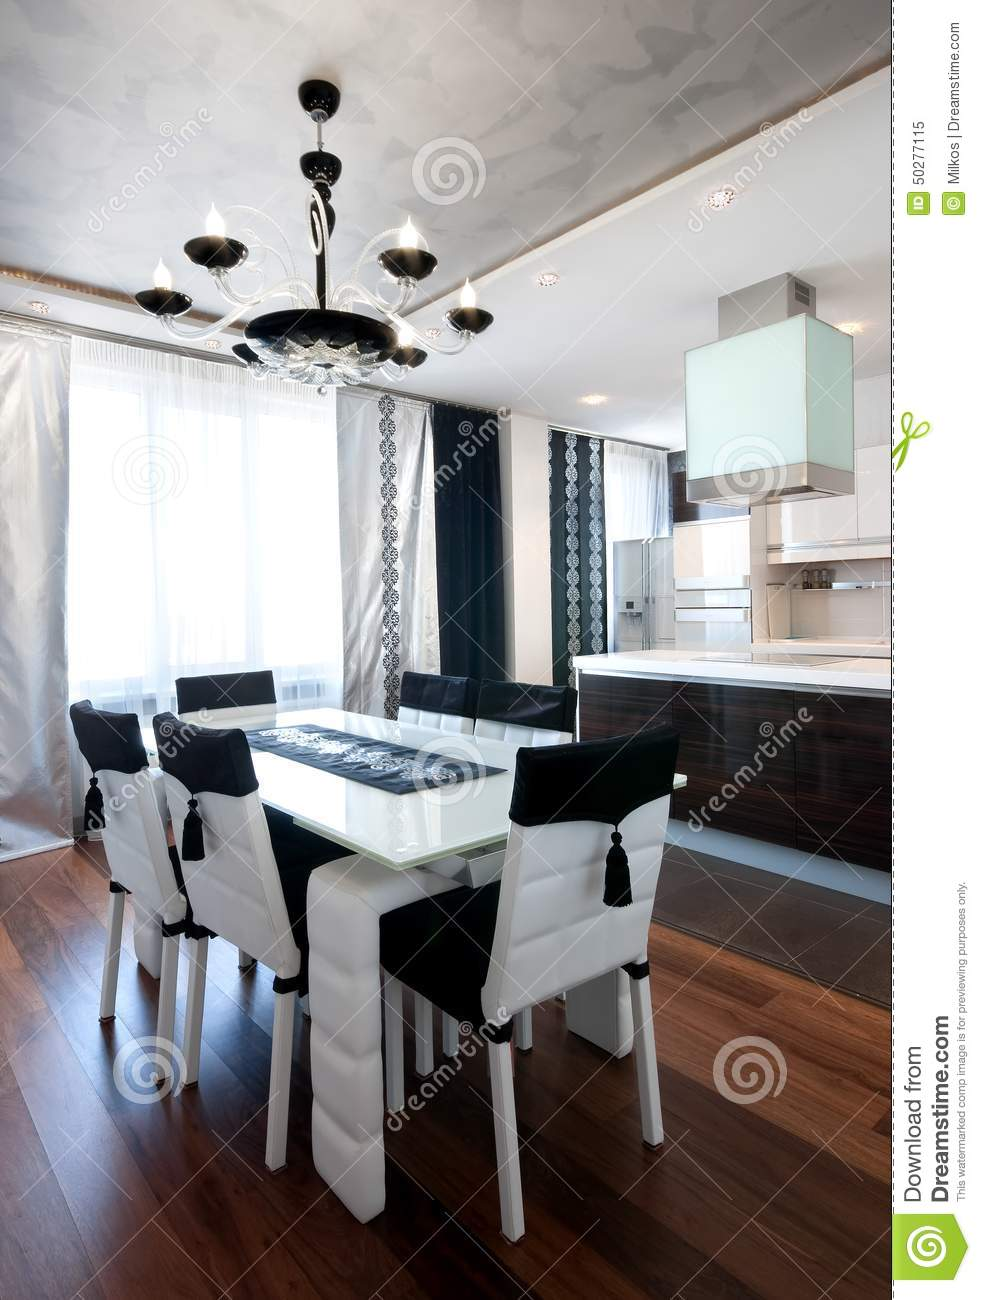 Modern Design Kitchen Interior In Black And White Stock Image Image 50277115